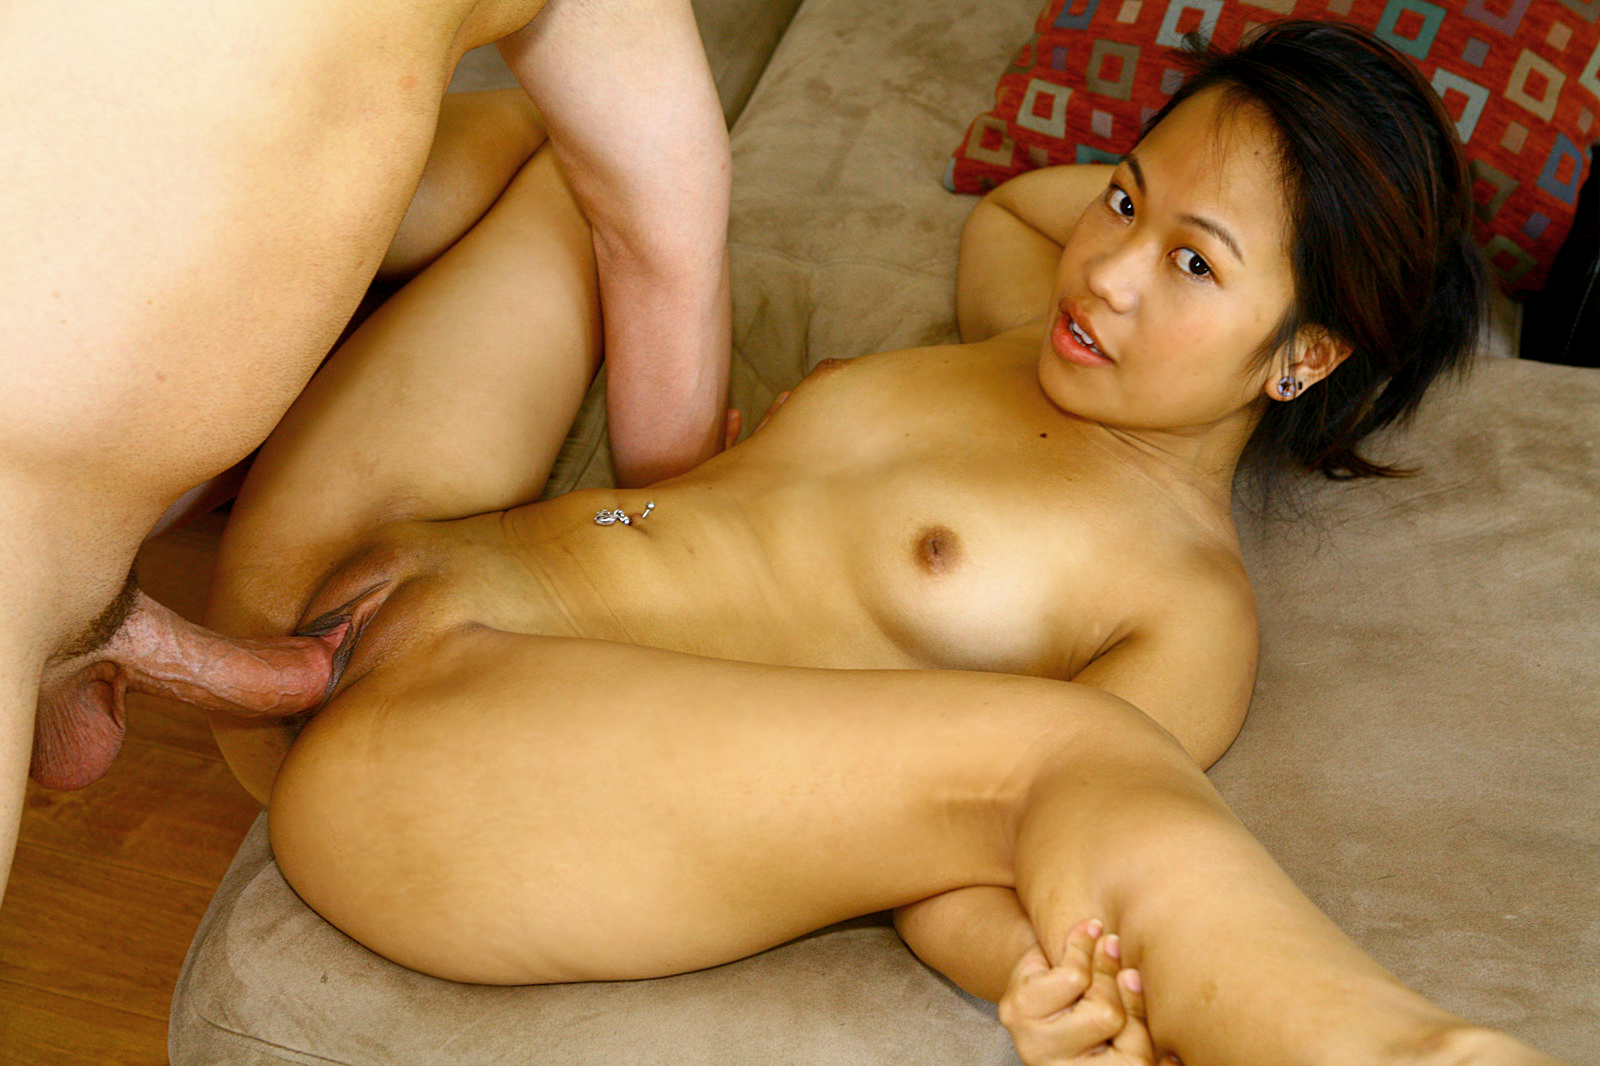 Curiously Asian girl fuked interesting